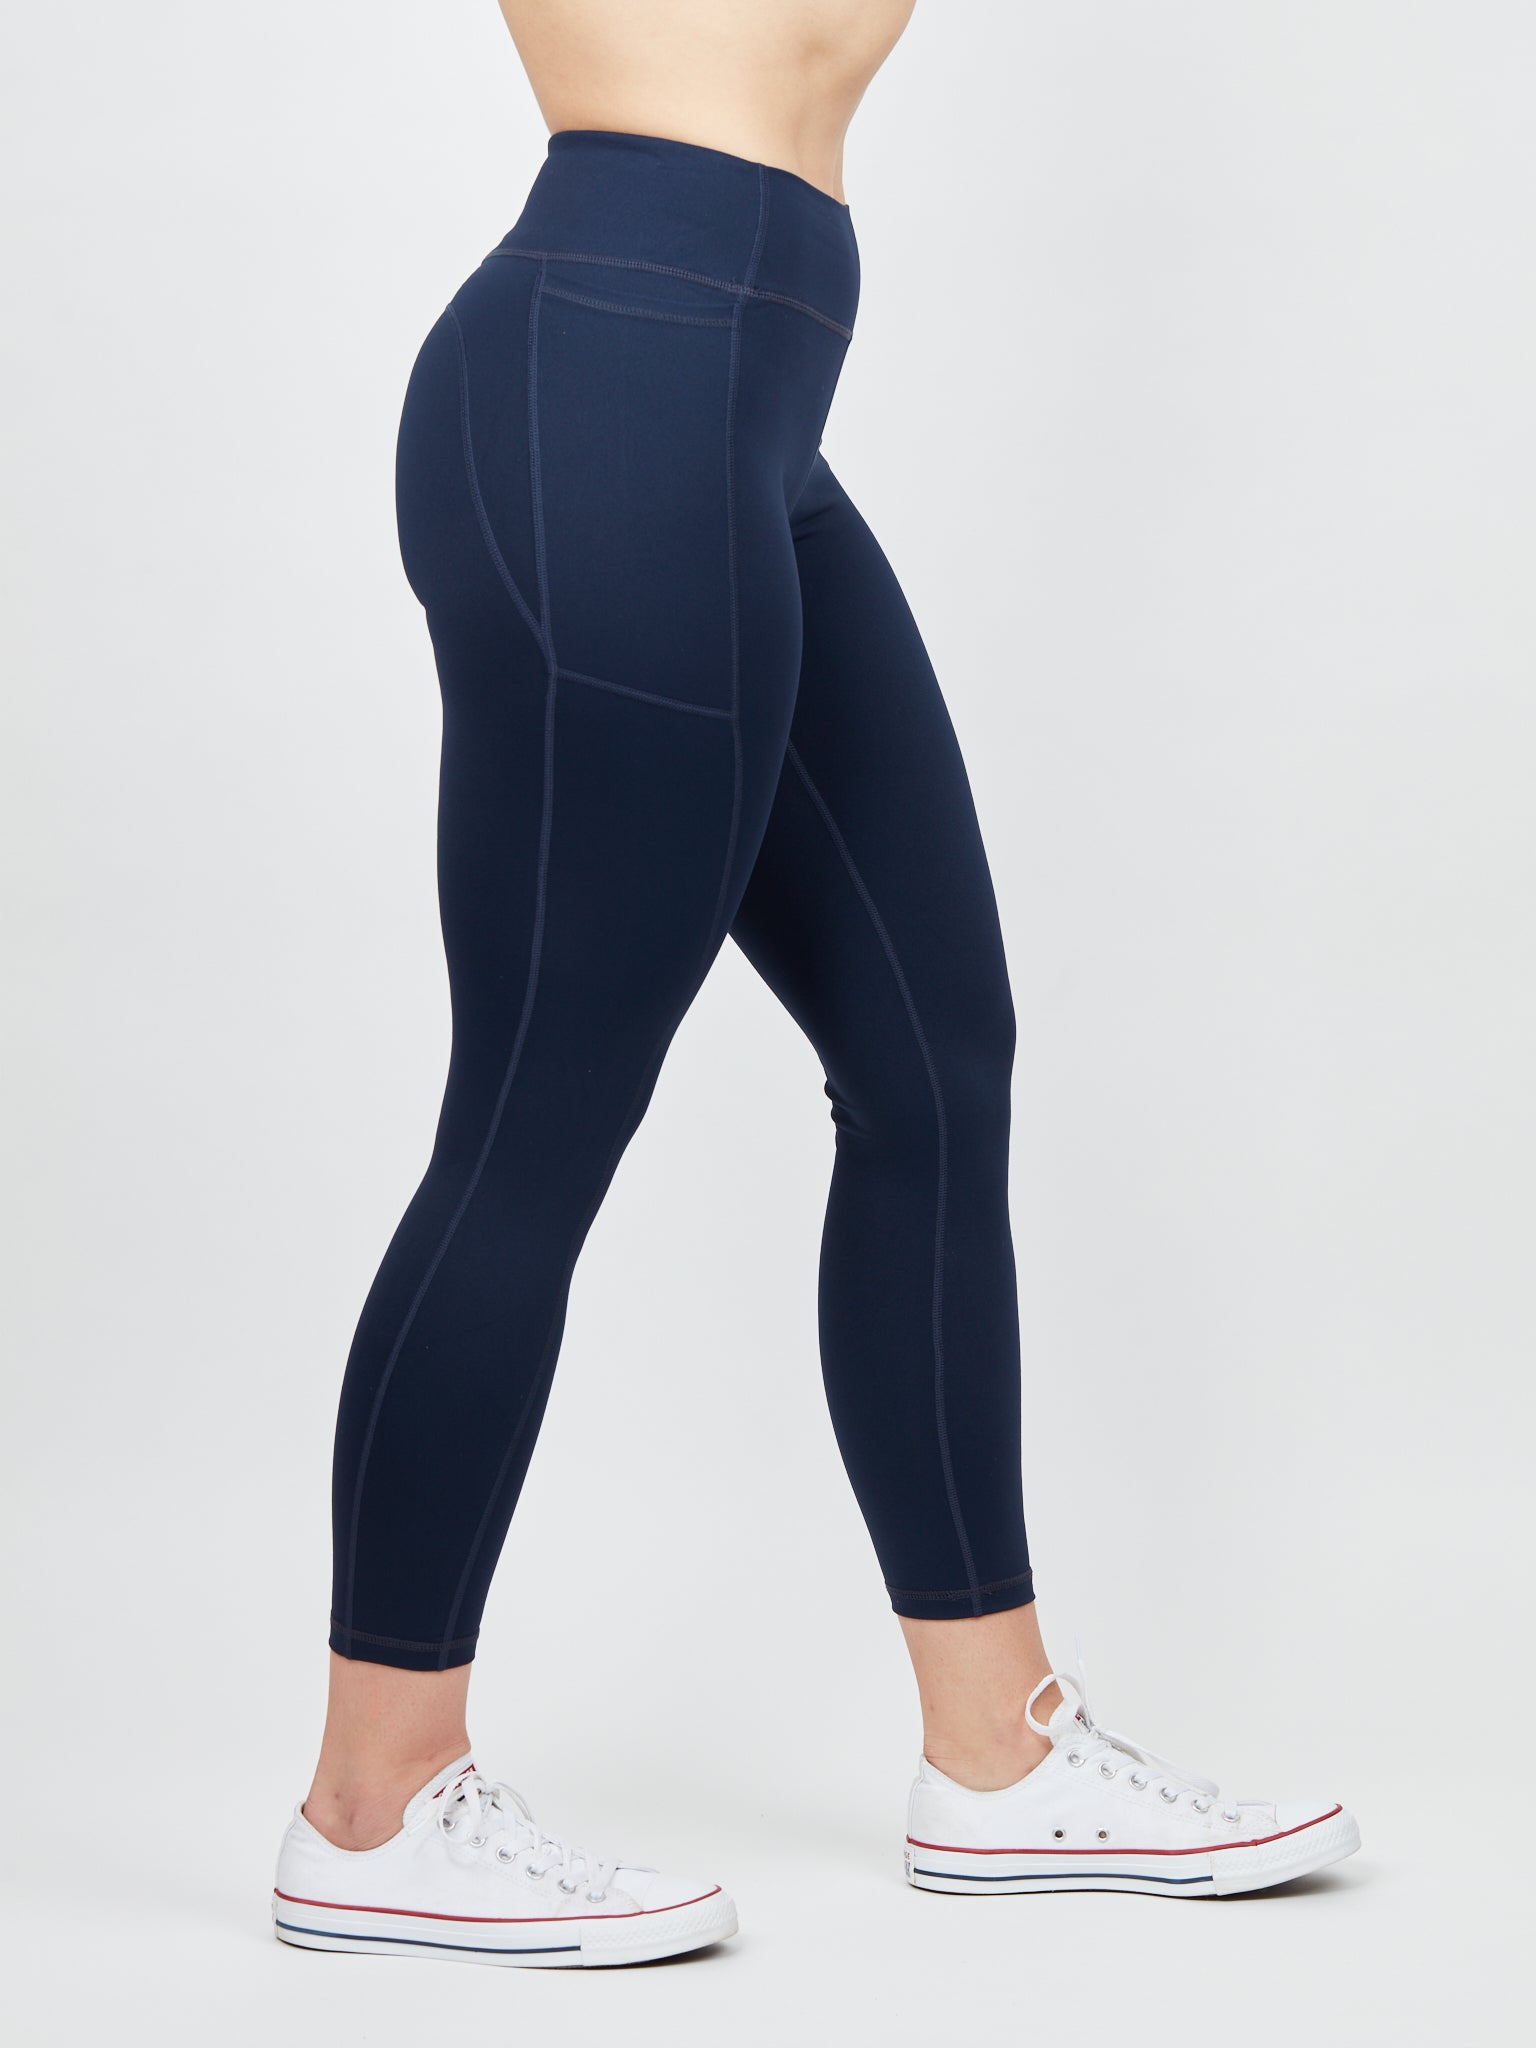 Kennedy Legging - Midnight